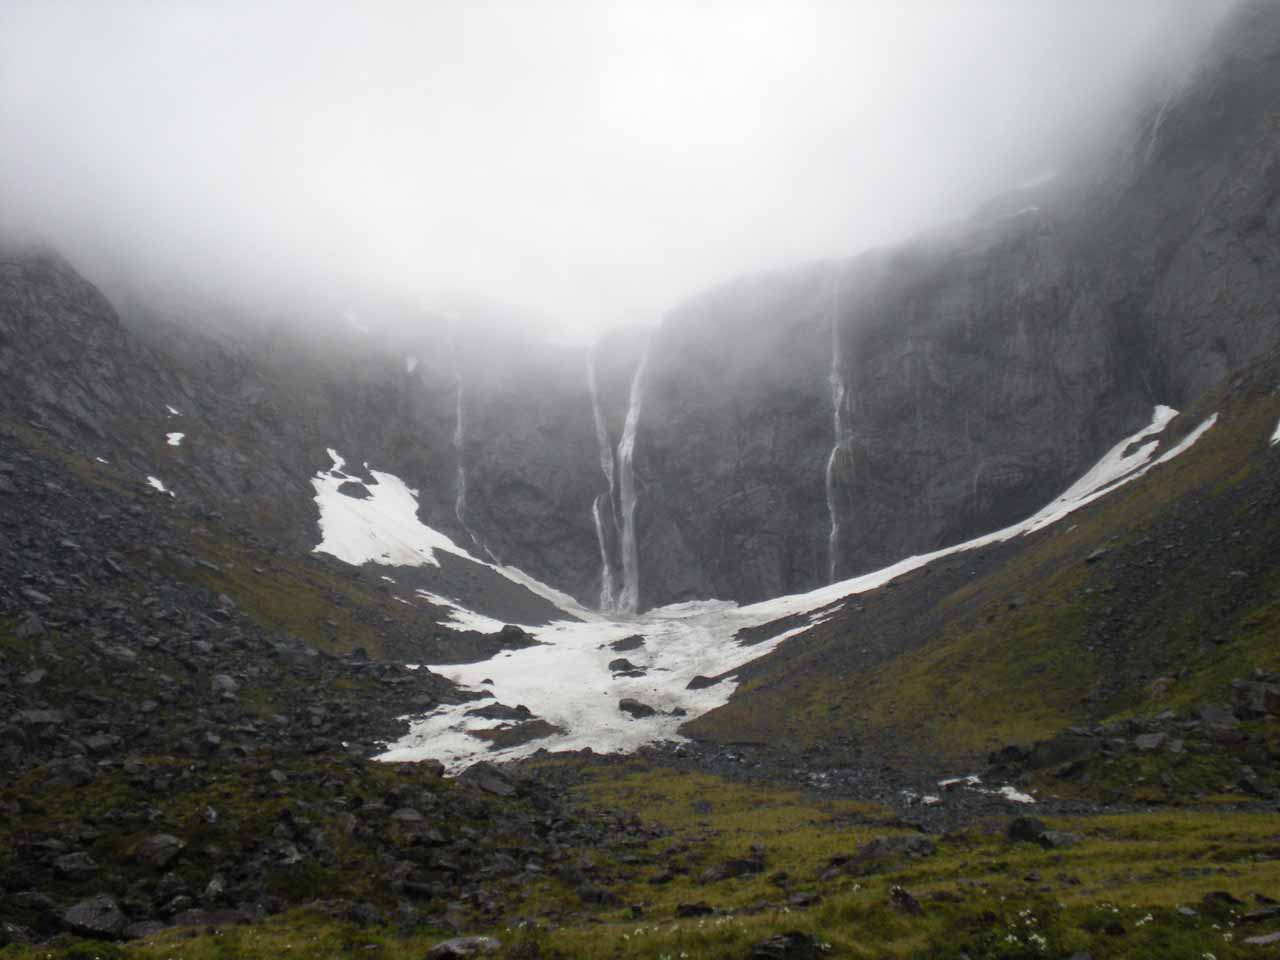 In December 2009, here's another look at the cirque by the Homer Tunnel where this time we saw a few more strands of waterfalls as opposed to the November 2004 experience